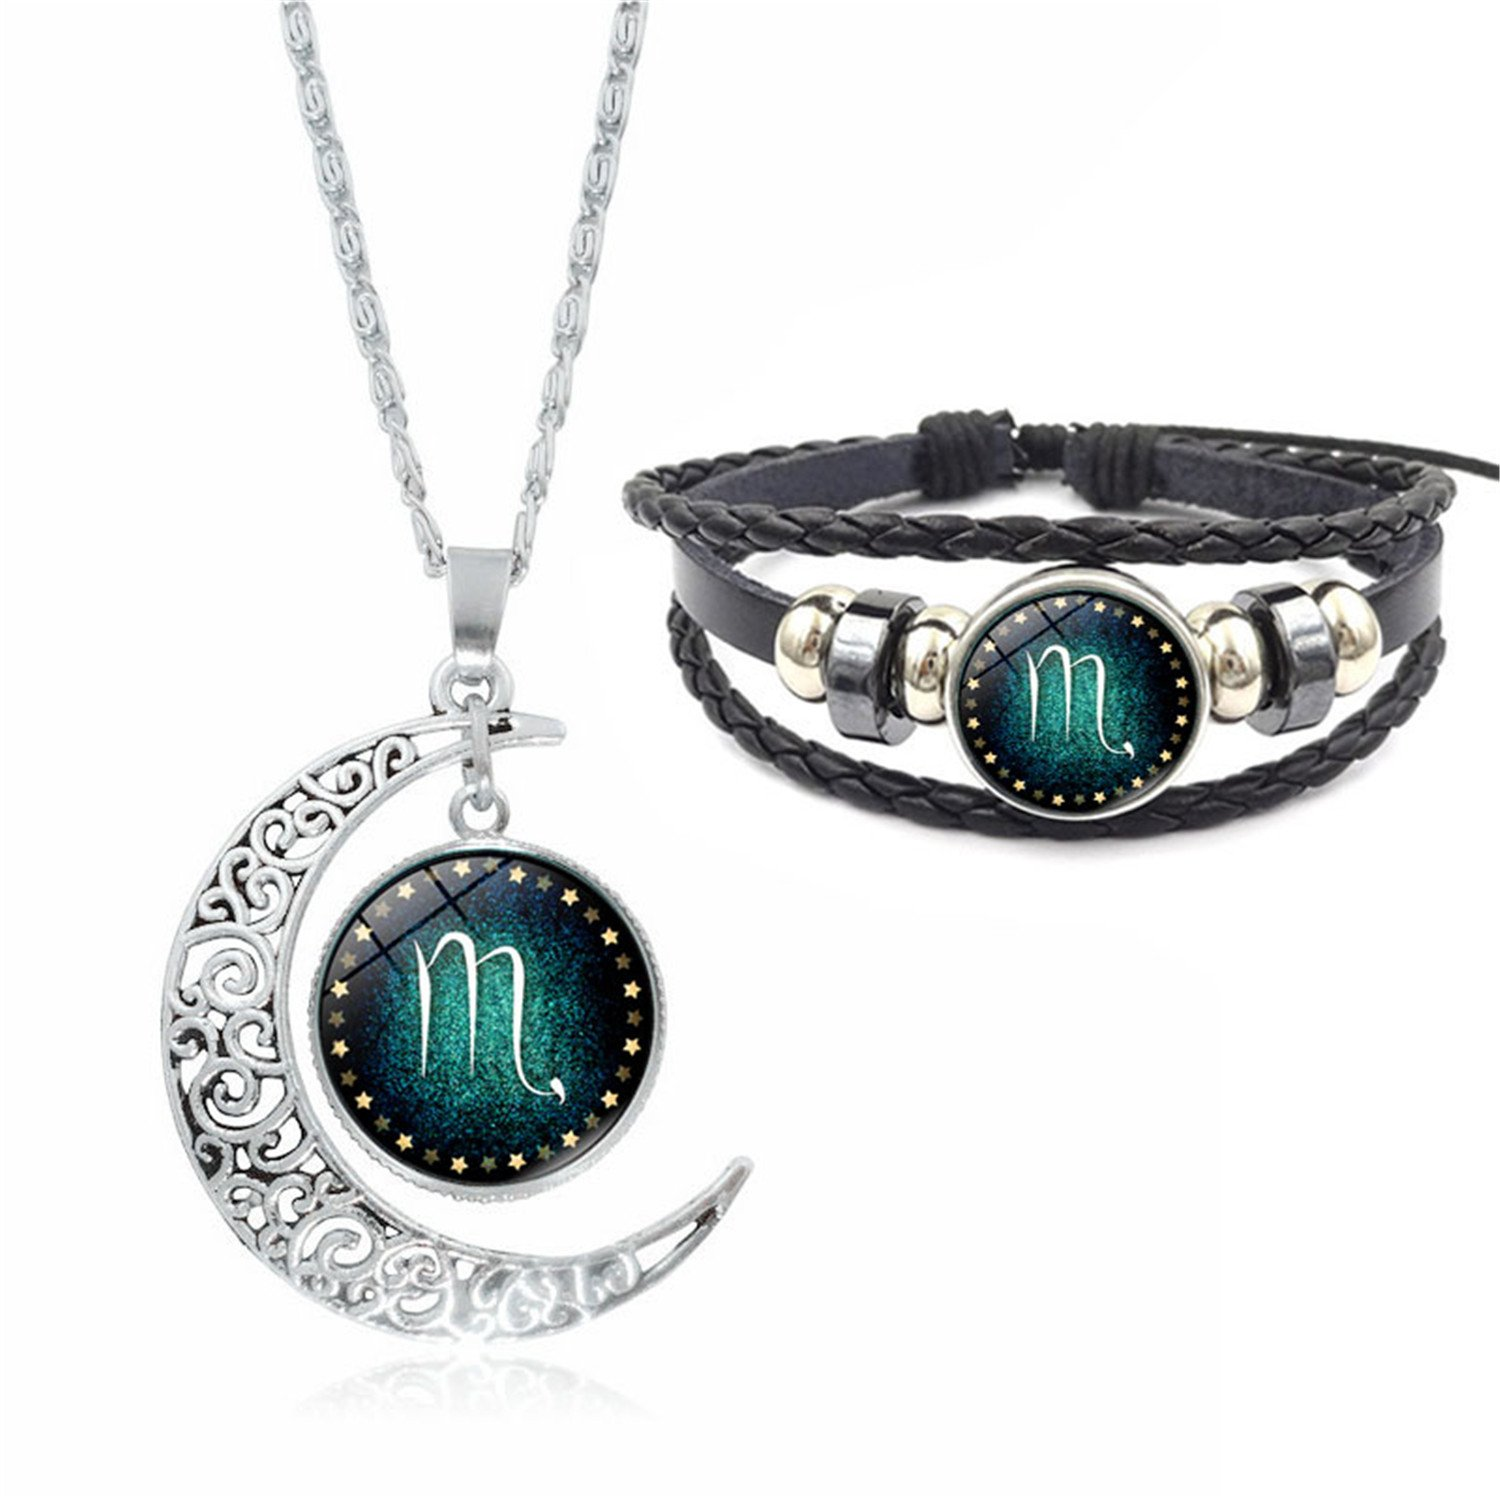 Fashion 12 Constellations Beaded Hand Woven Leather Bracelet And Moon Pendant Necklace Zodiac Sign Jewelry Set (Scorpio)